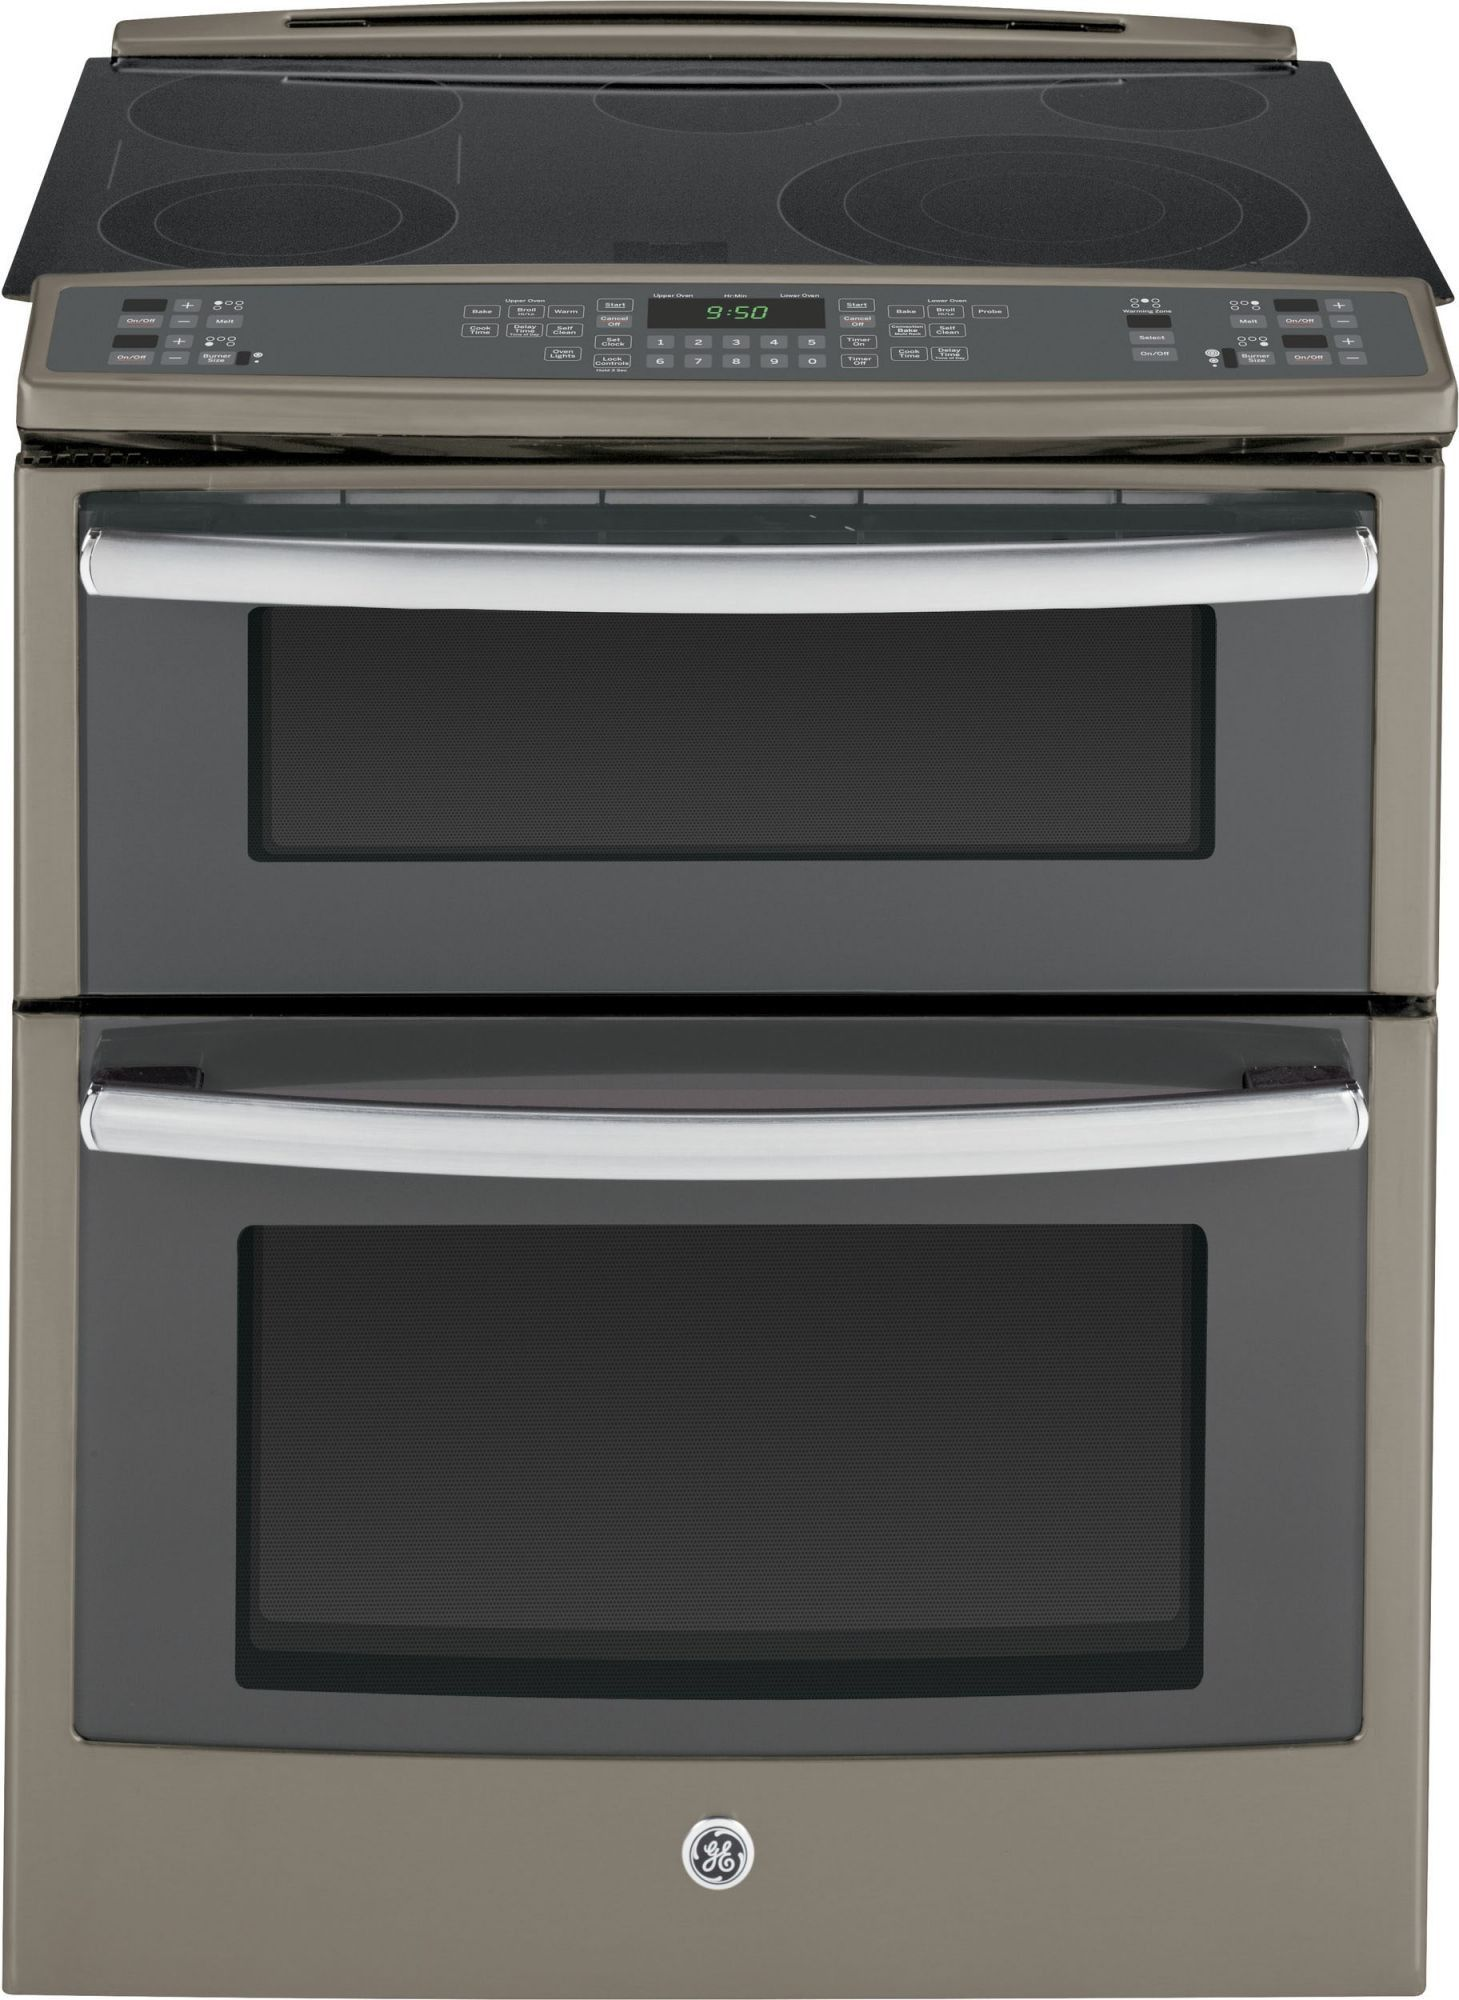 Appliances Ge Ps950efes Cooking Electric Double Oven Double